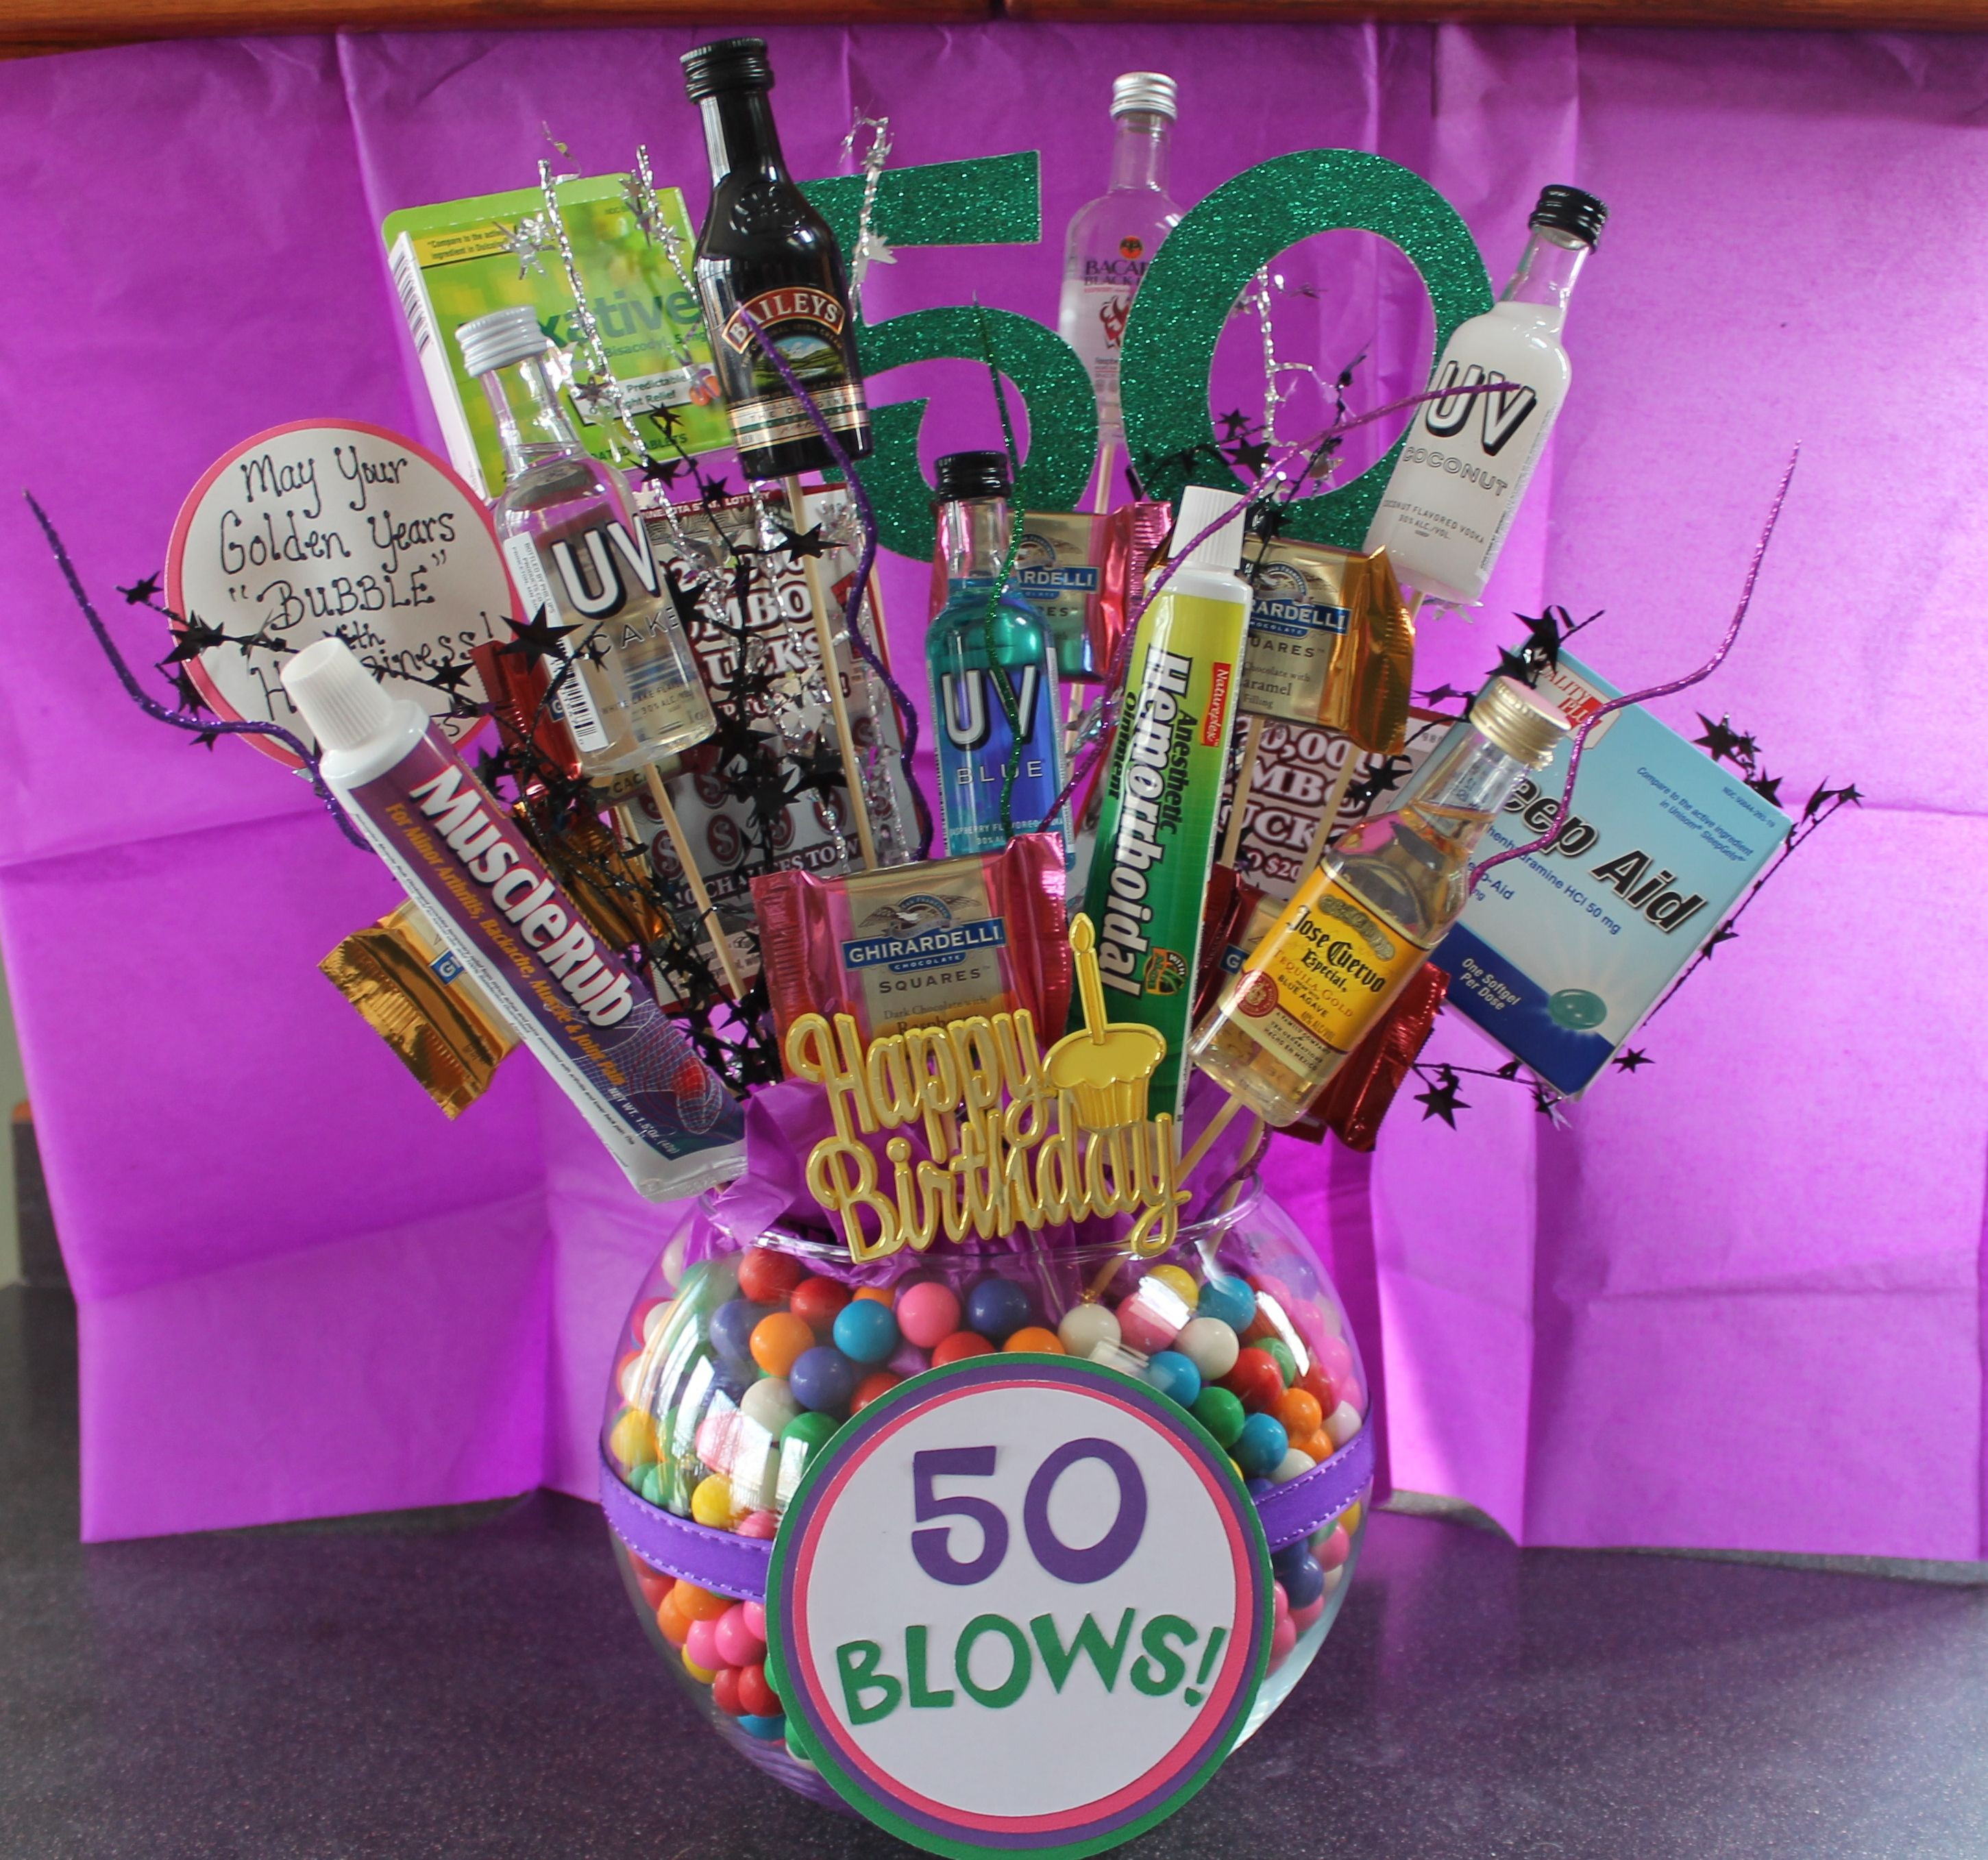 Best ideas about Gift Ideas For 50th Birthday . Save or Pin DIY Crafty Projects 50th Birthday Gift Ideas DIY Now.